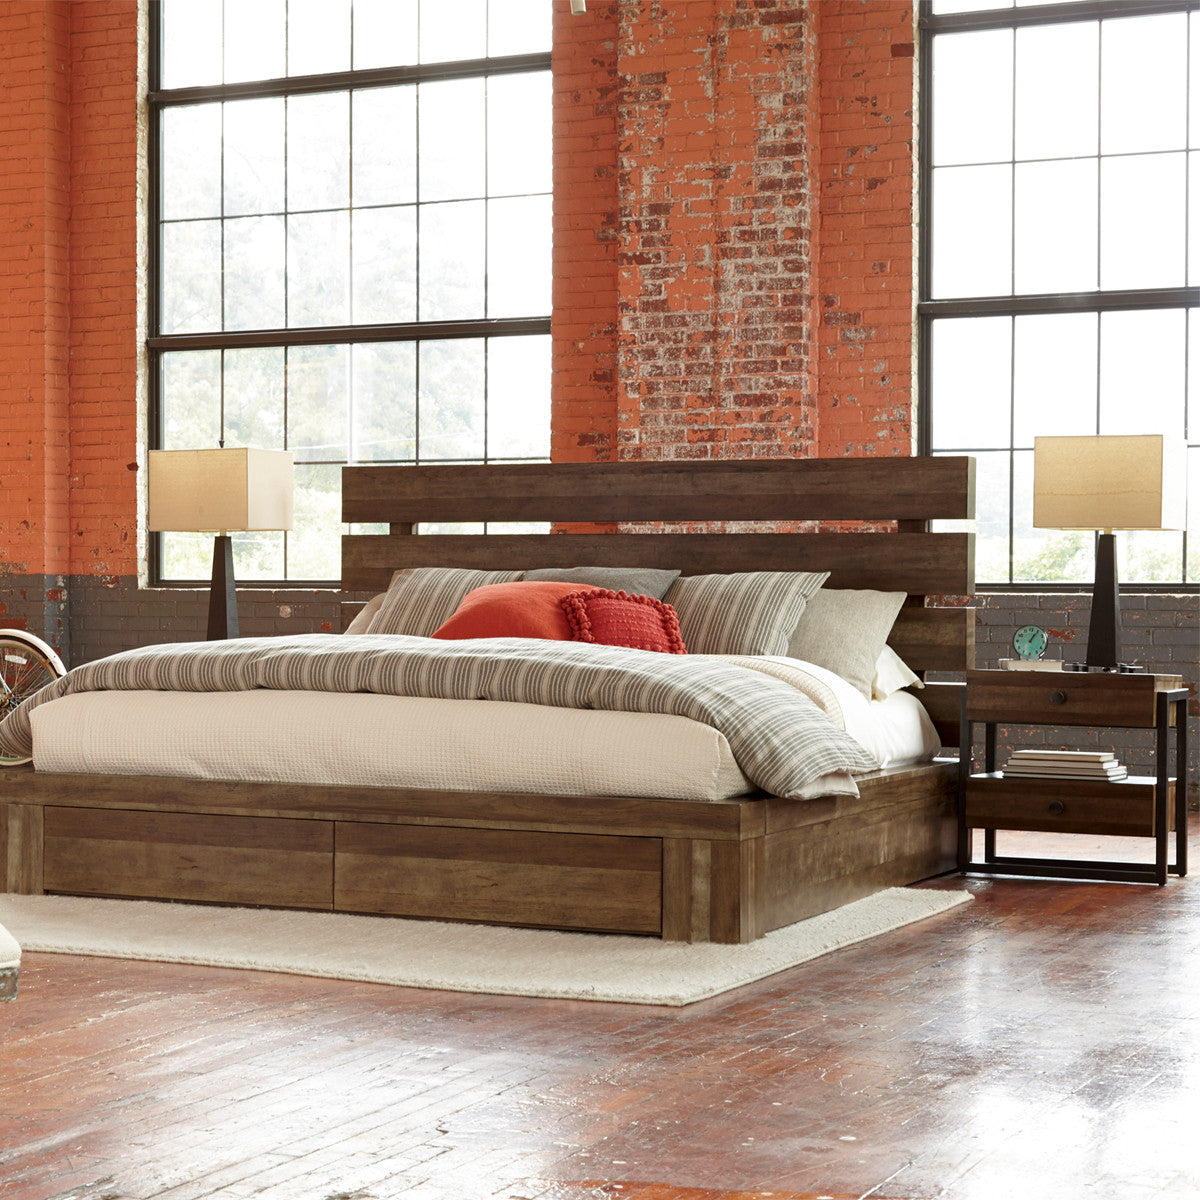 Providence Bedroom Furniture Providence Timber Queen Bed Max Sparrow